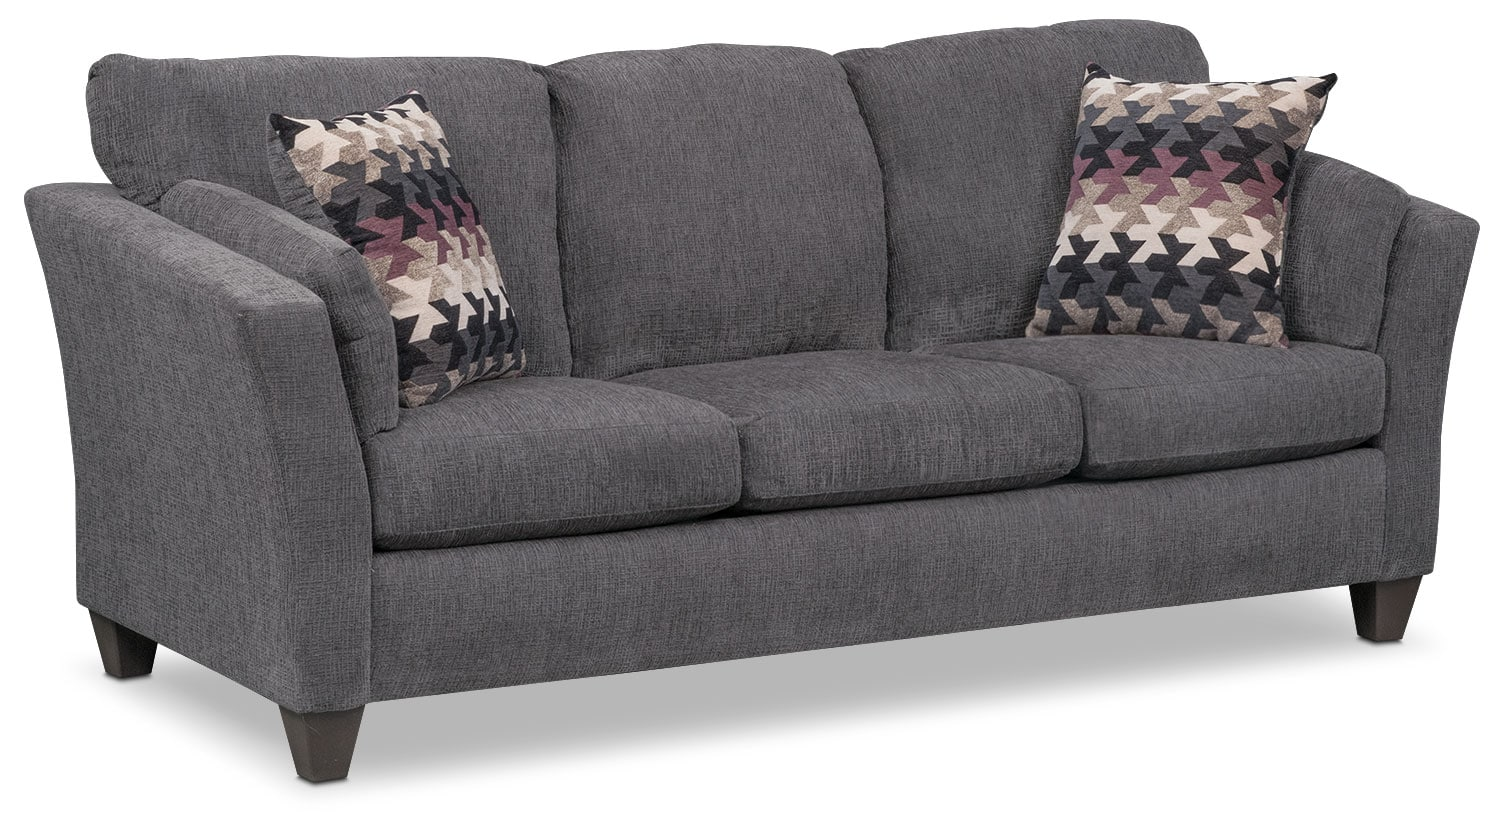 Juno Queen Memory Foam Sleeper Sofa - Smoke